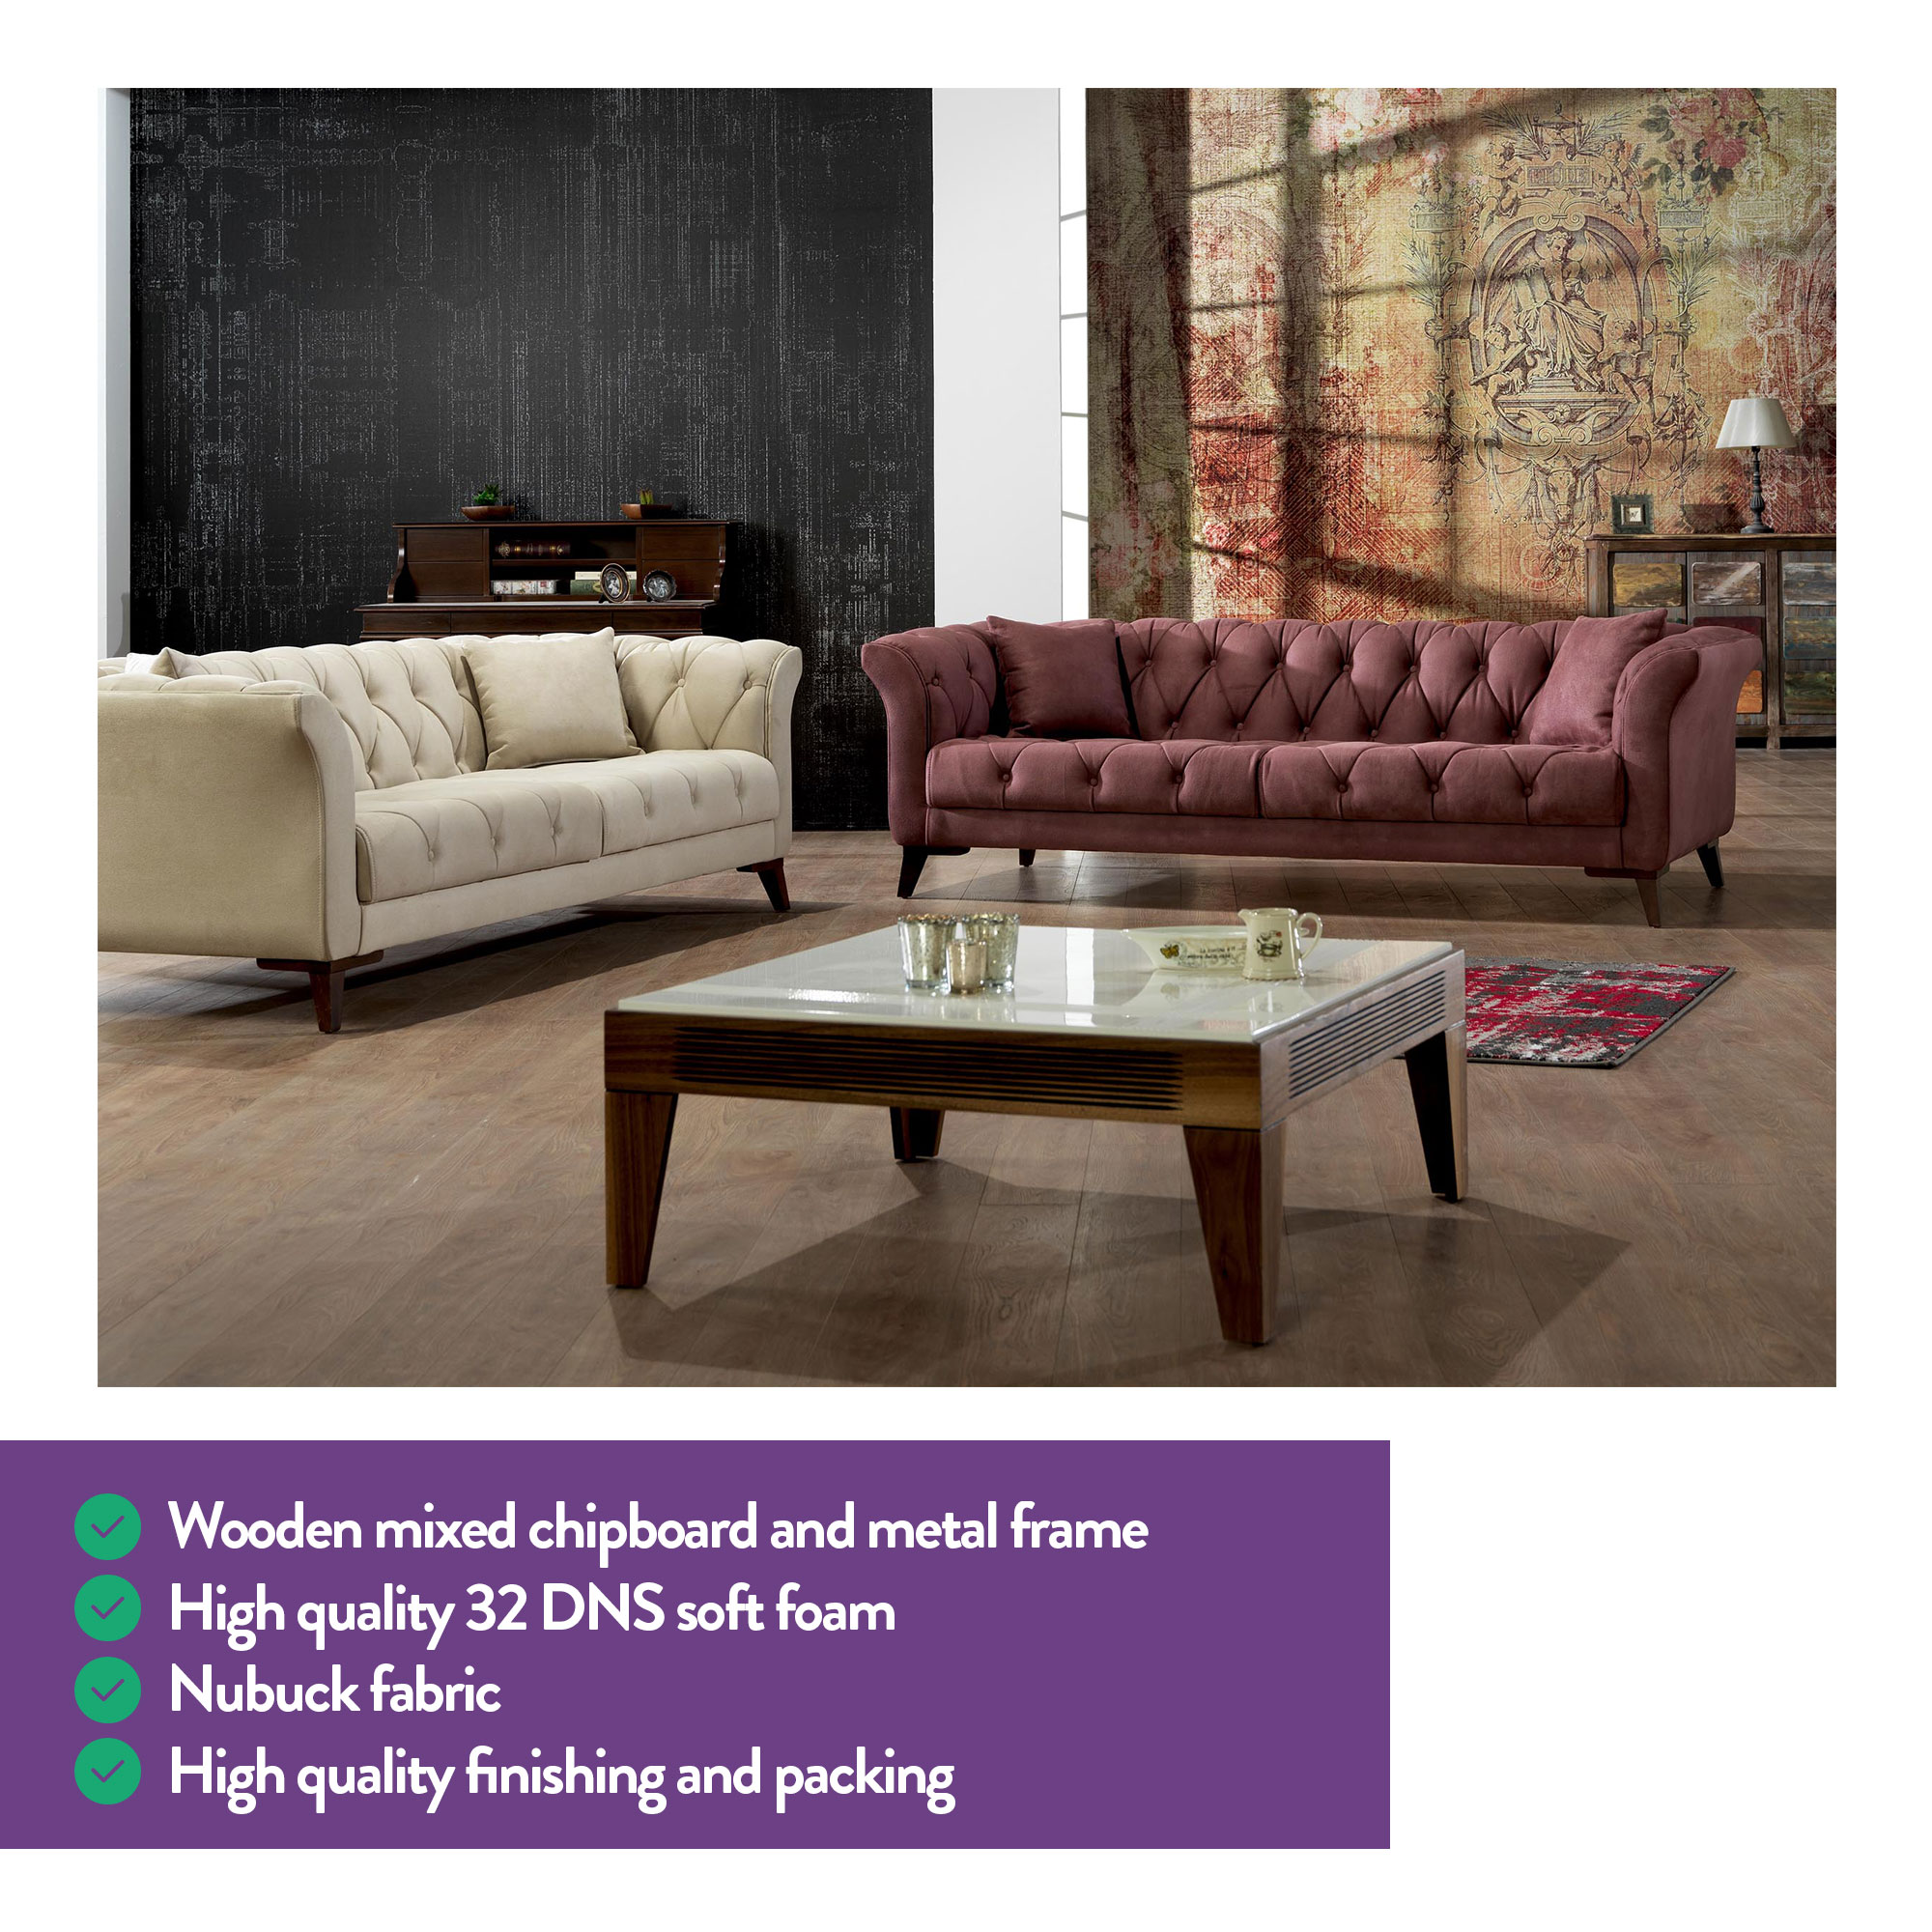 Fine Mare Collection Vega Mid Century Modern Tufted Chesterfield 2 Seater Loveseat Sofa Flamenco Home Designer Goods Pabps2019 Chair Design Images Pabps2019Com